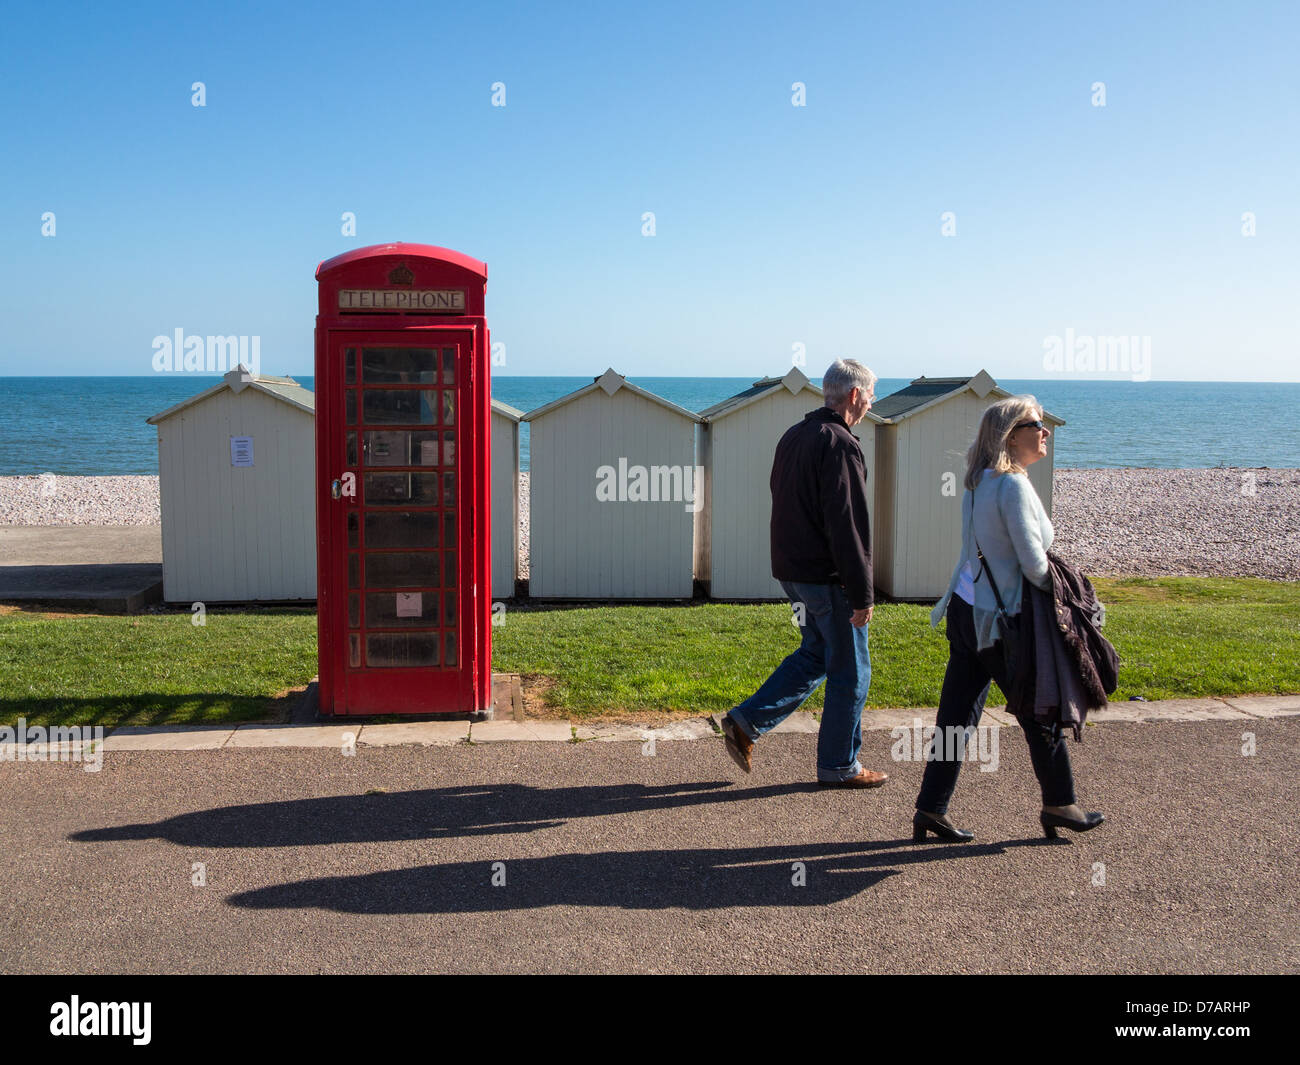 Old red telephone box and beach huts on Budleigh Salterton seafront, Budleigh Salterton, Devon, England. - Stock Image